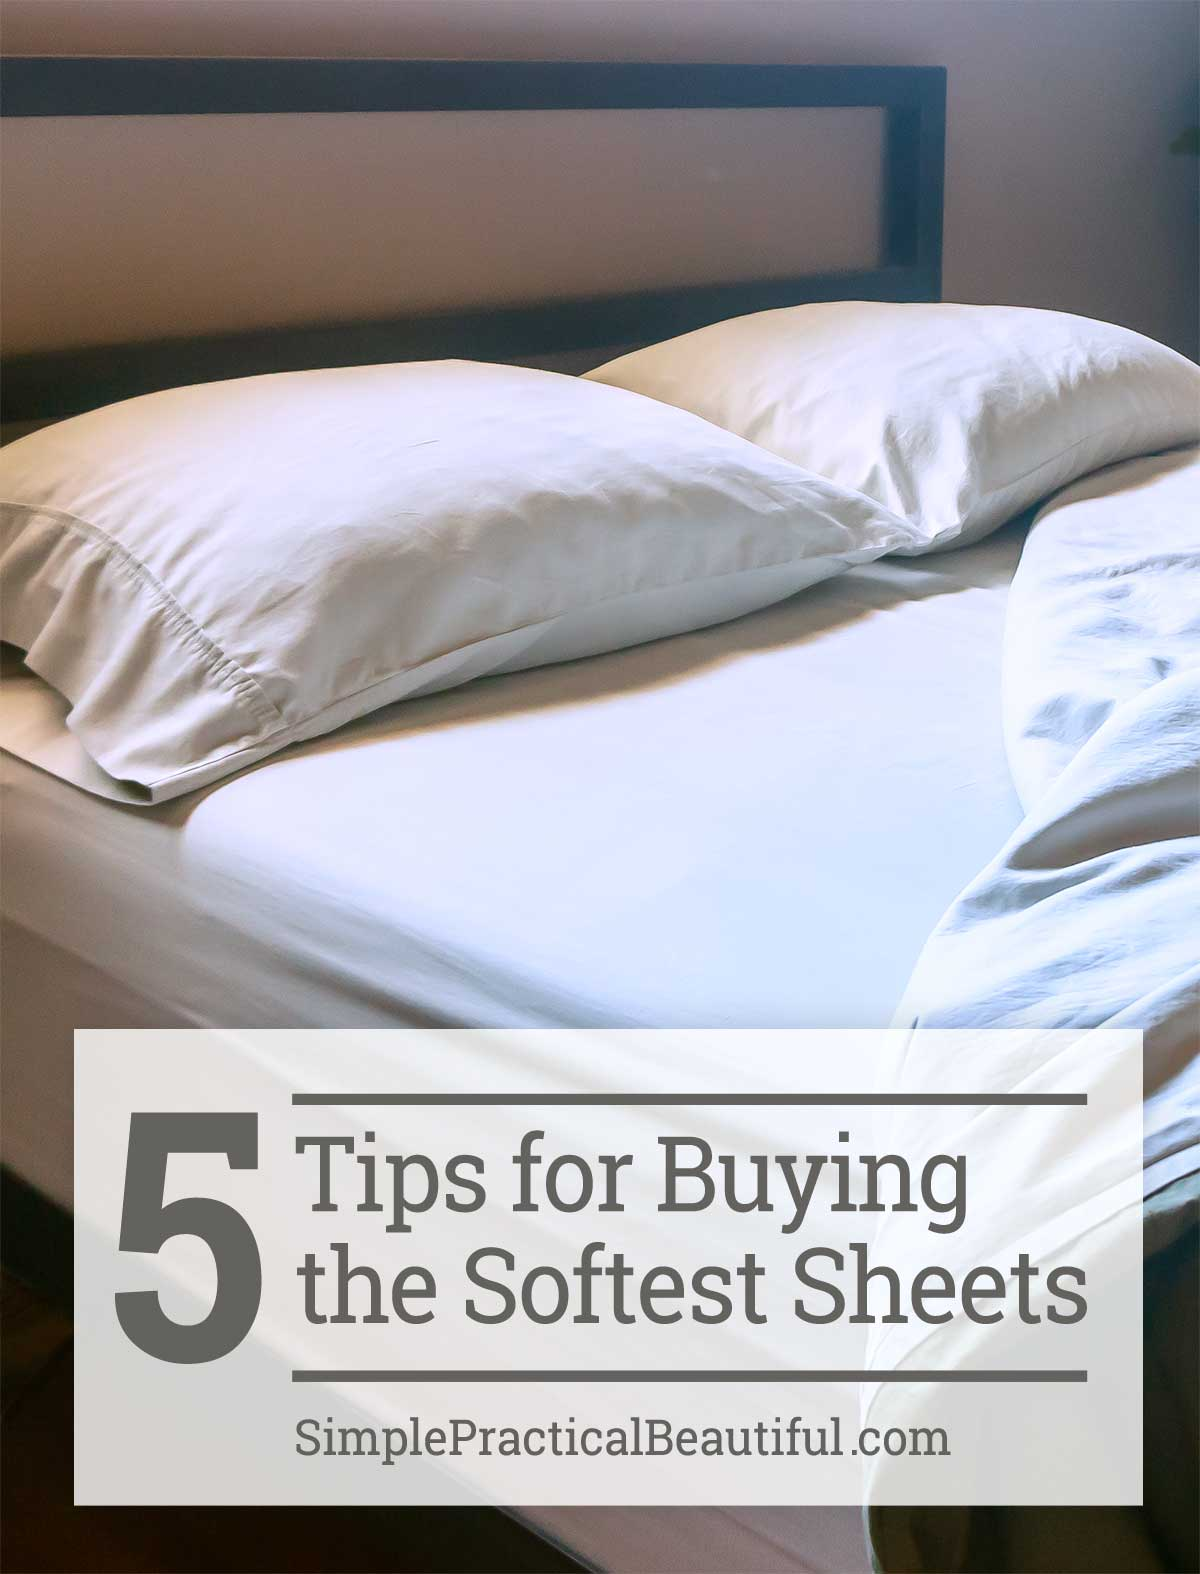 What Do You Need To Look For The Softest Most Comfortable Sheets